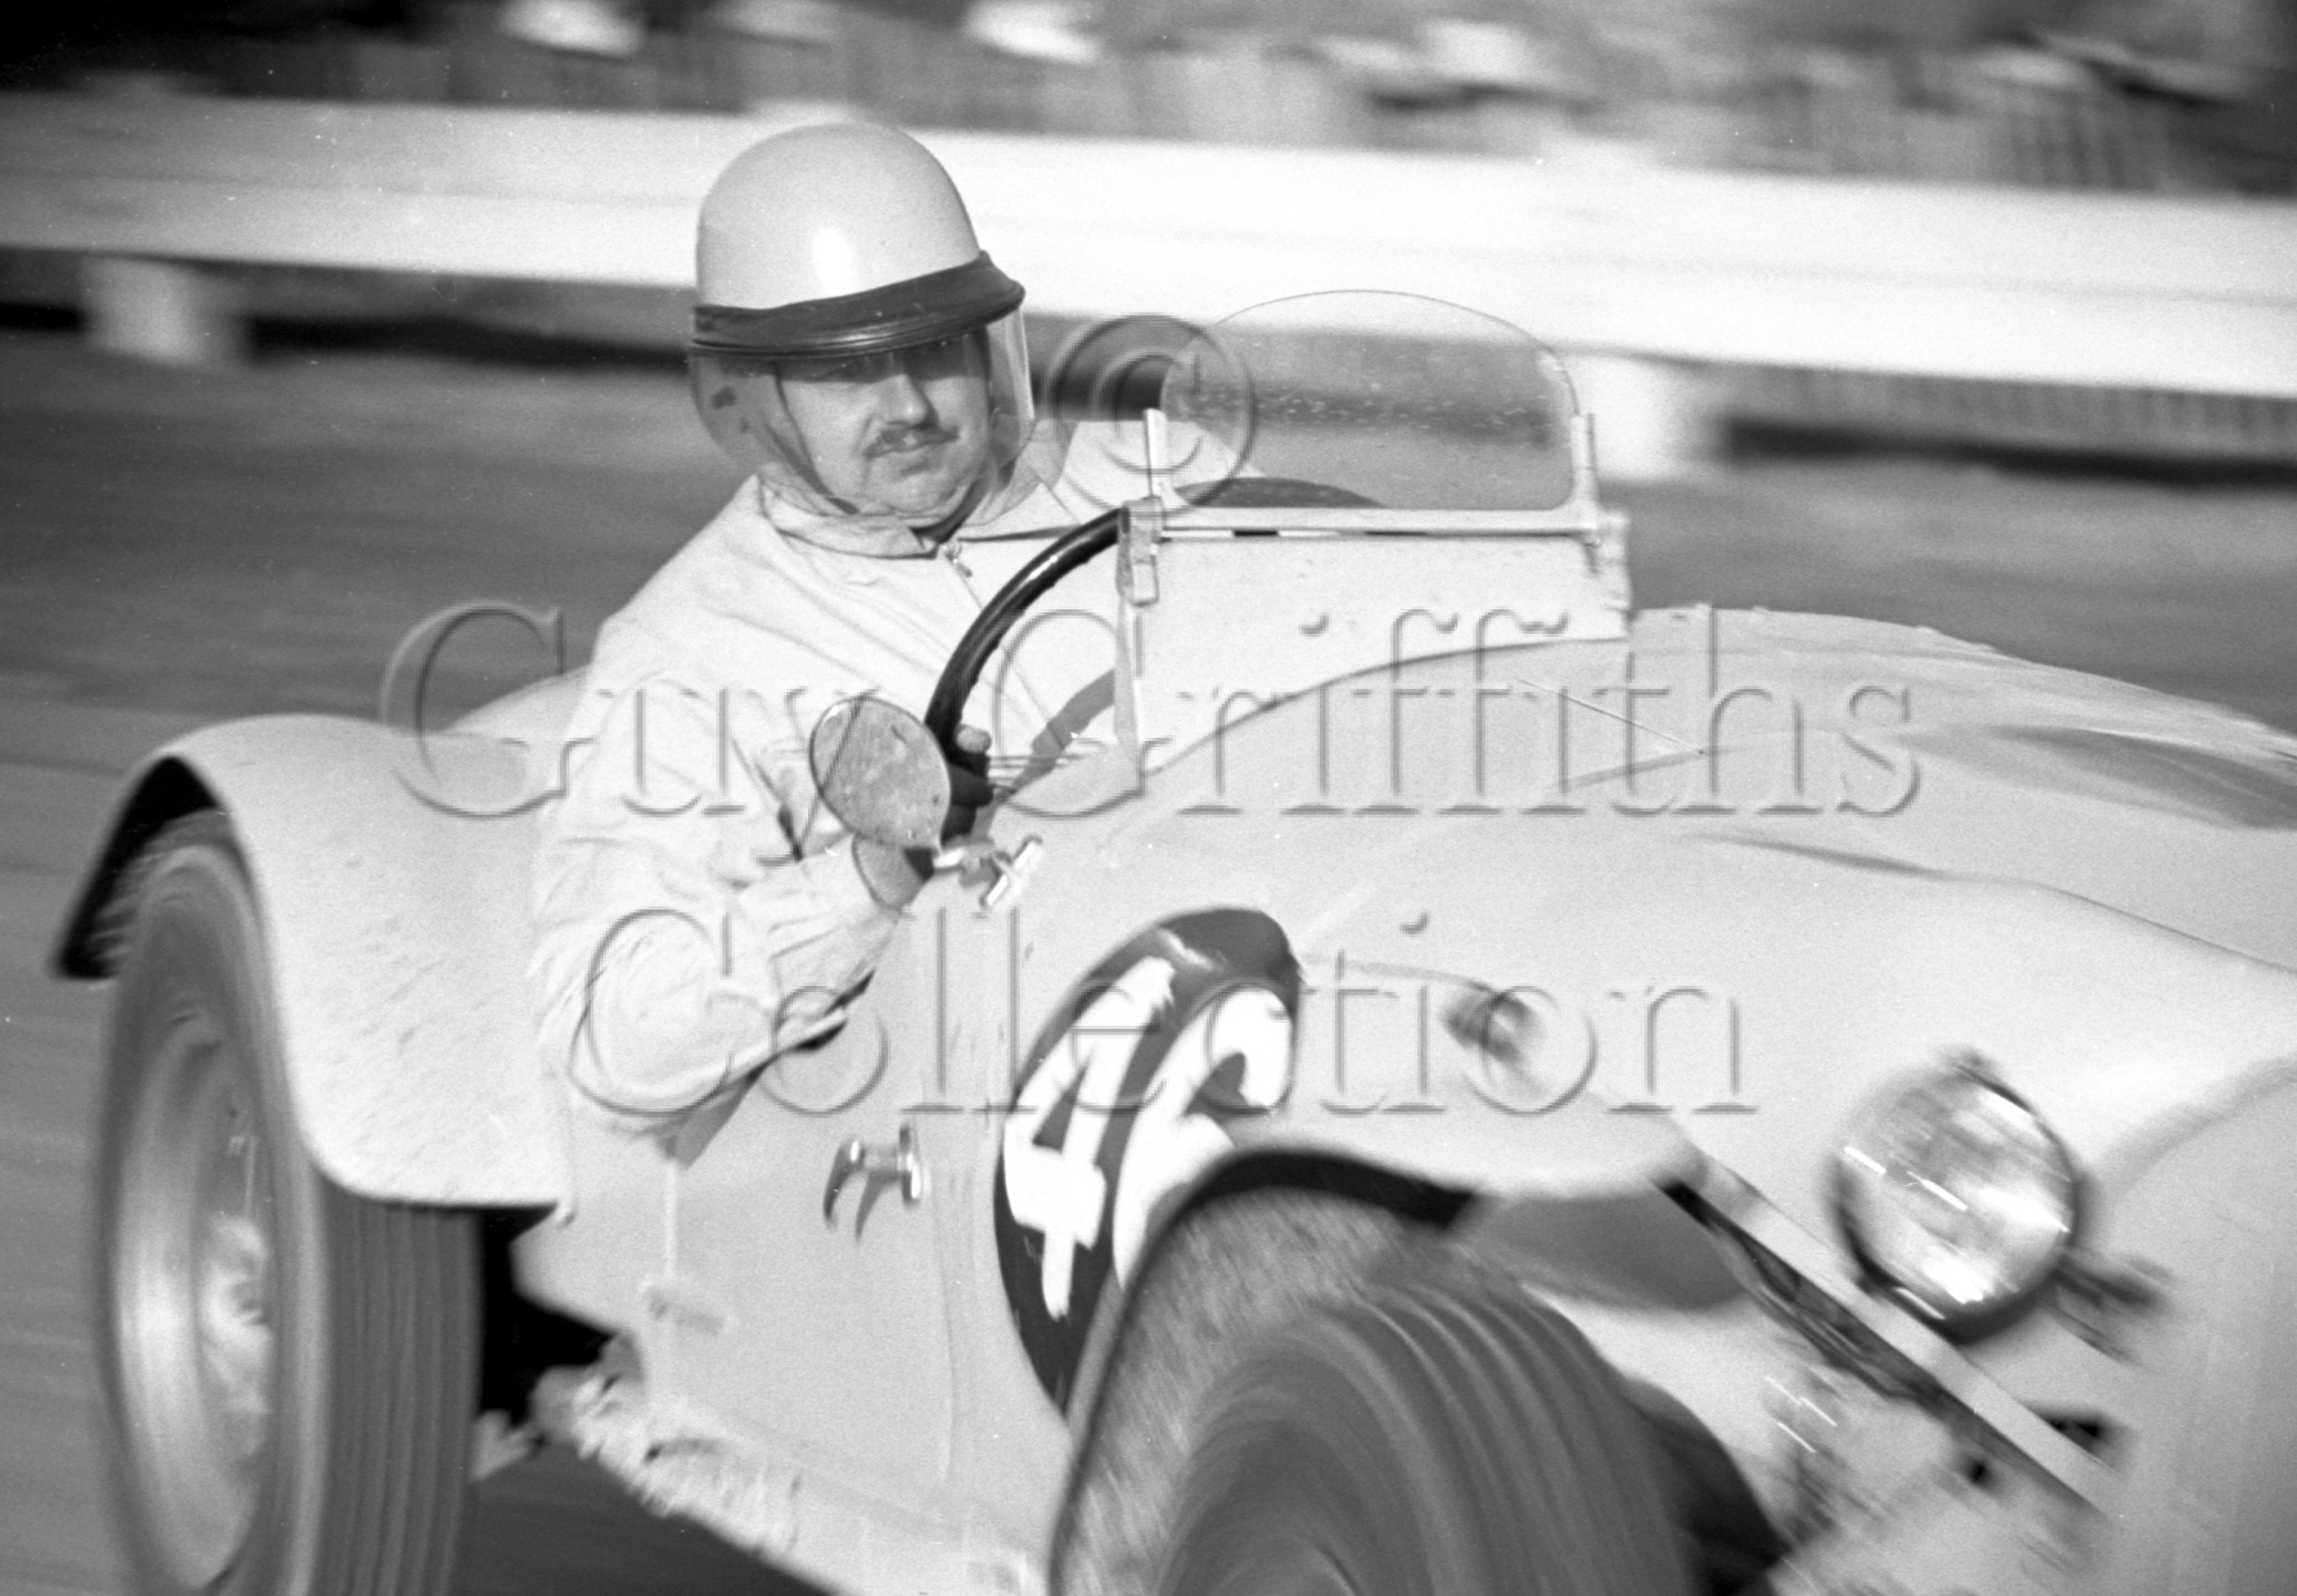 50-791–K-H-Downing–Connaught–Goodwood–22-03-1952.jpg - The Guy Griffiths Collection